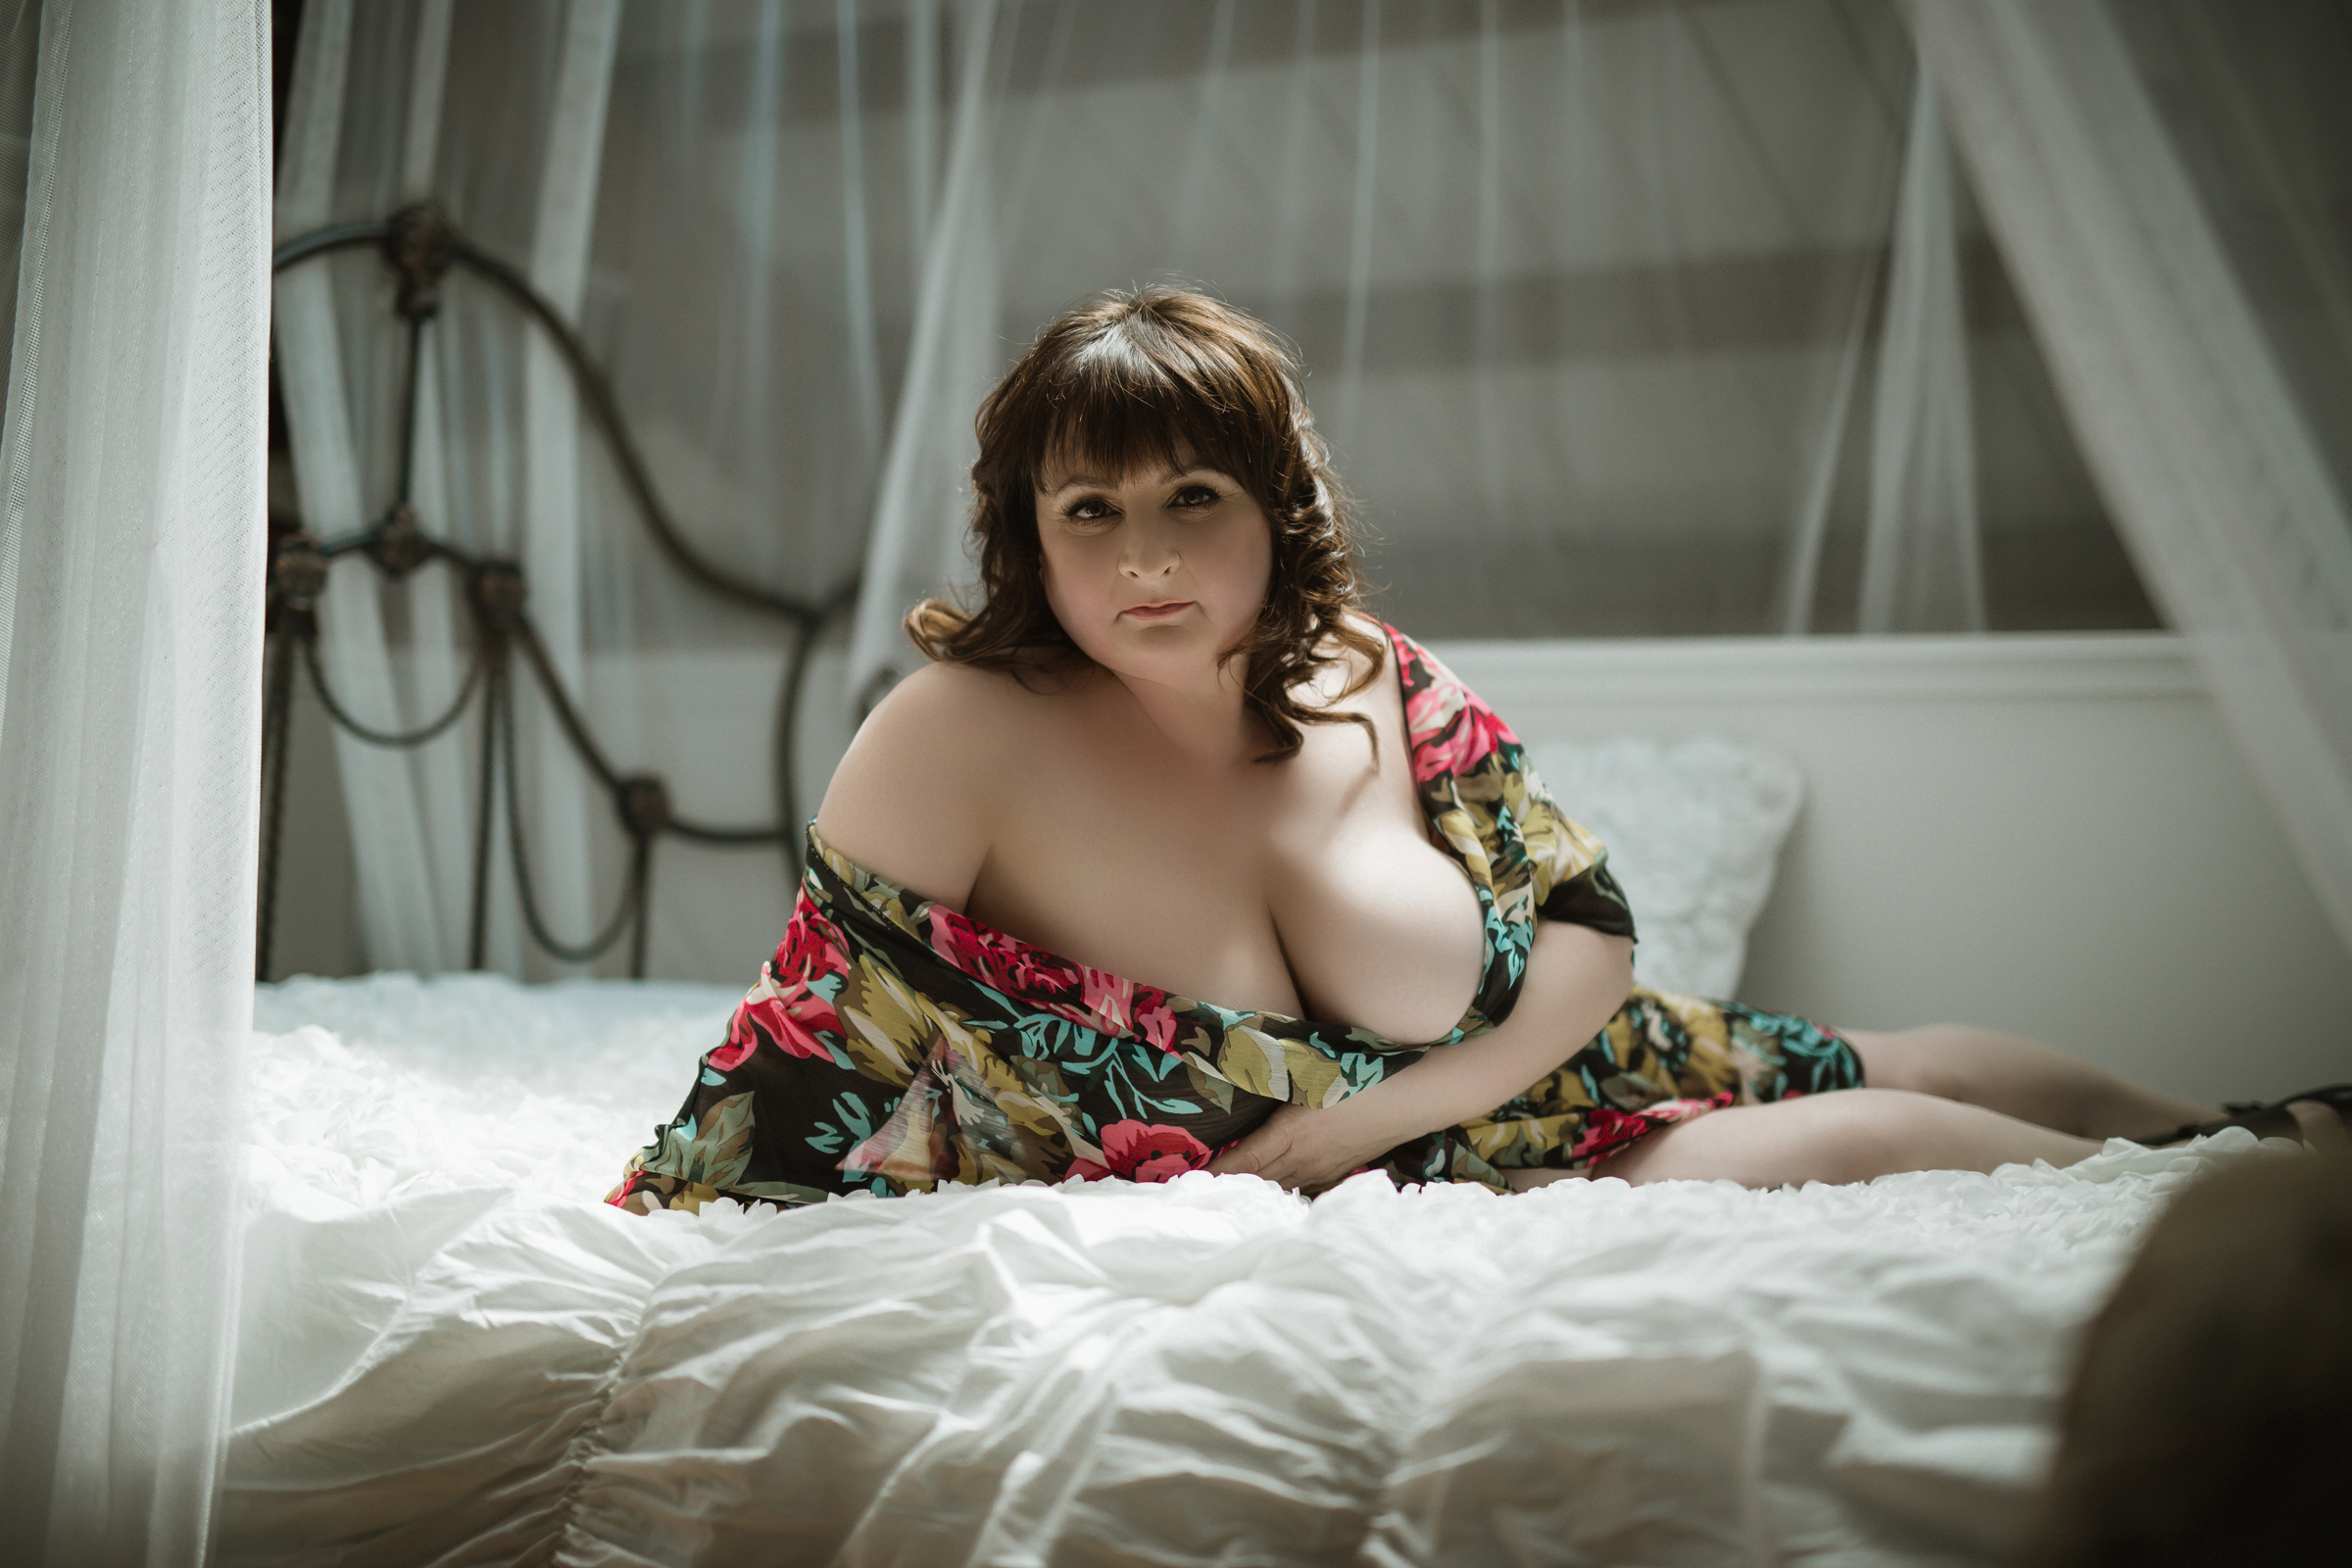 NJ-NYC-RED BANK-BOUDOIR-PLUS-SIZE-PAM-boudoiR-2793.jpg